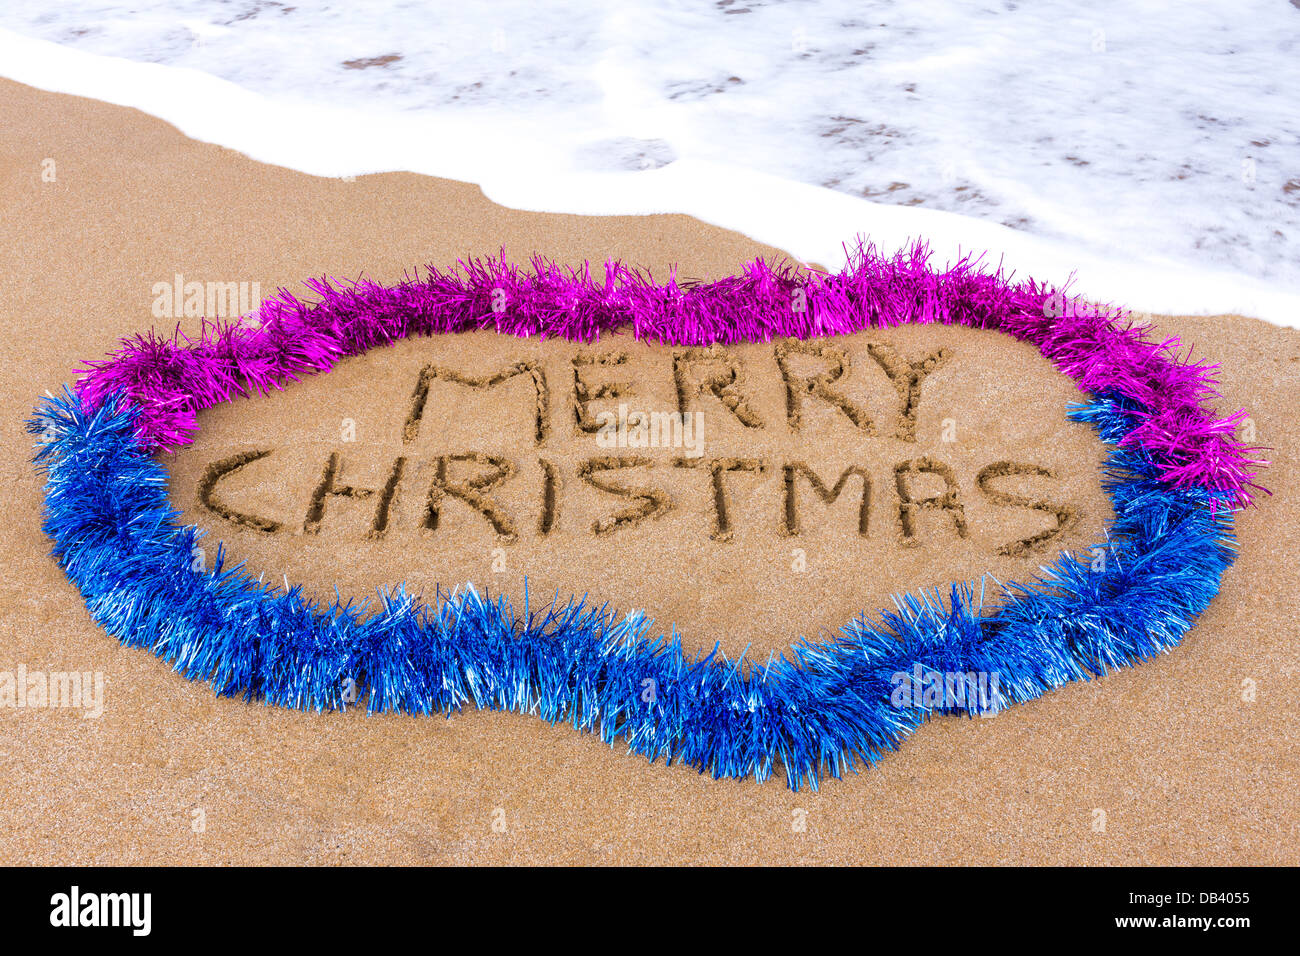 Merry Christmas written in sand with tinsel and sea in background - Stock Image